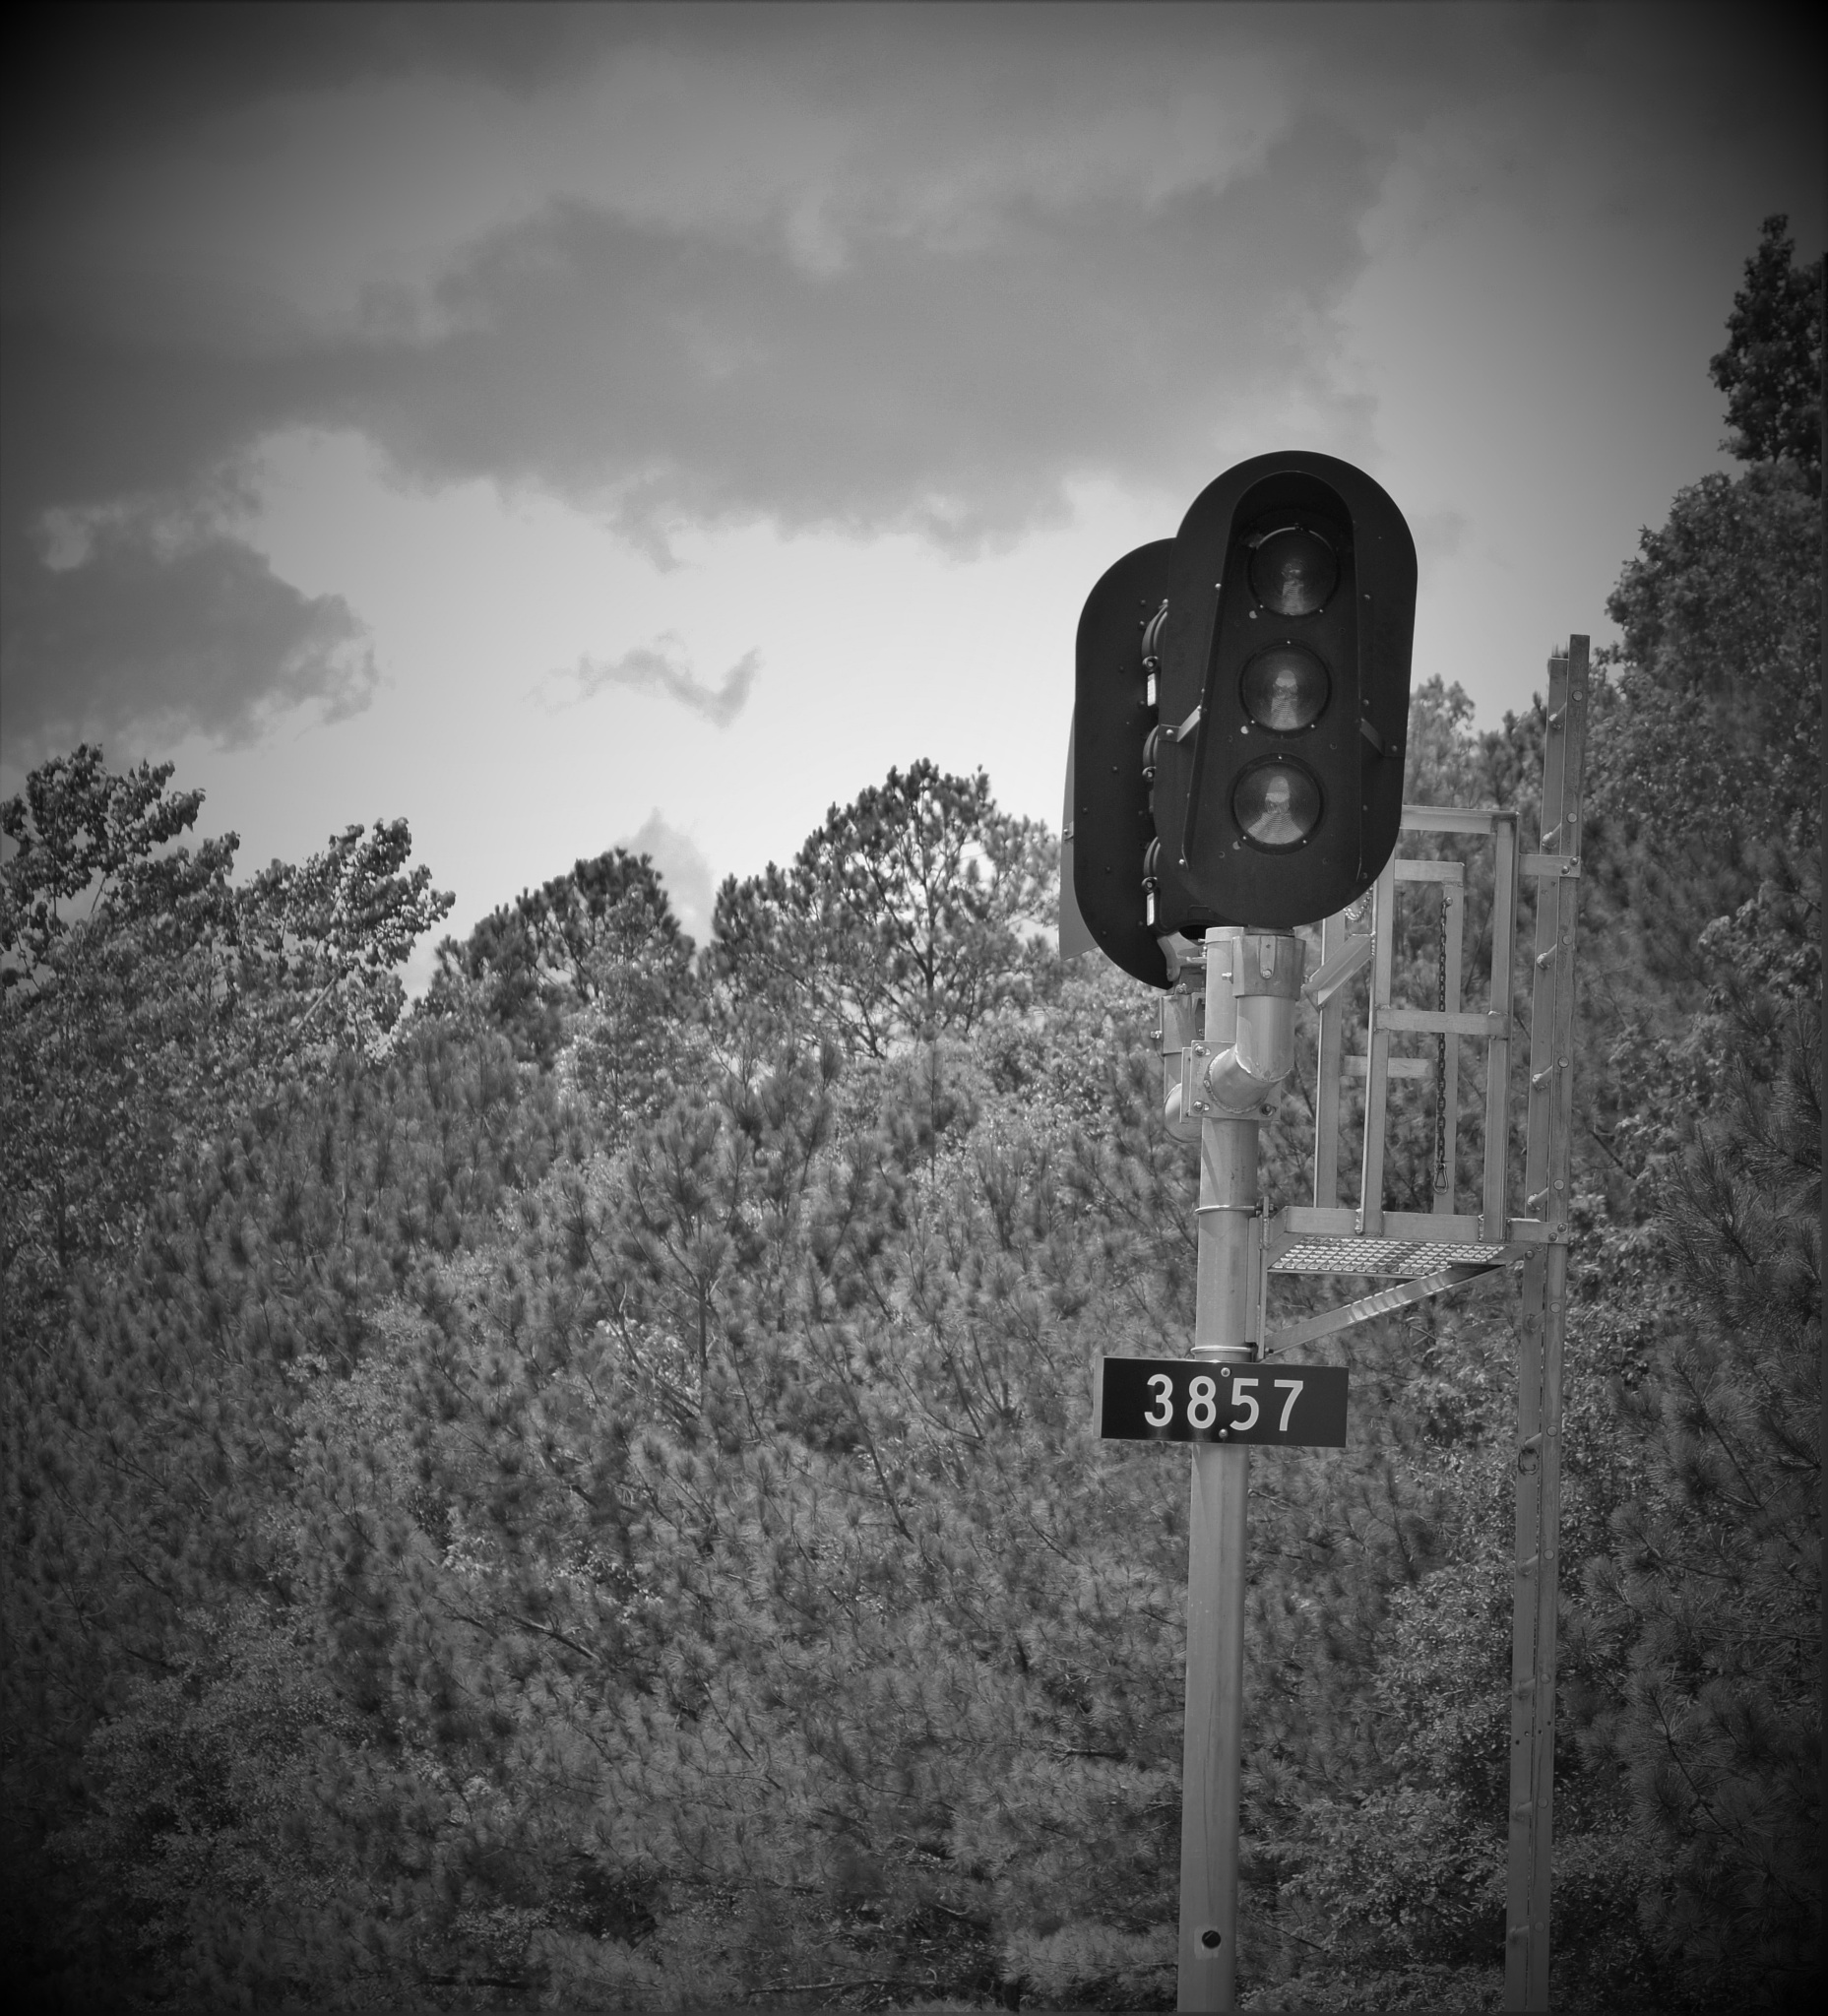 Just give us a signal! by RogerHunter